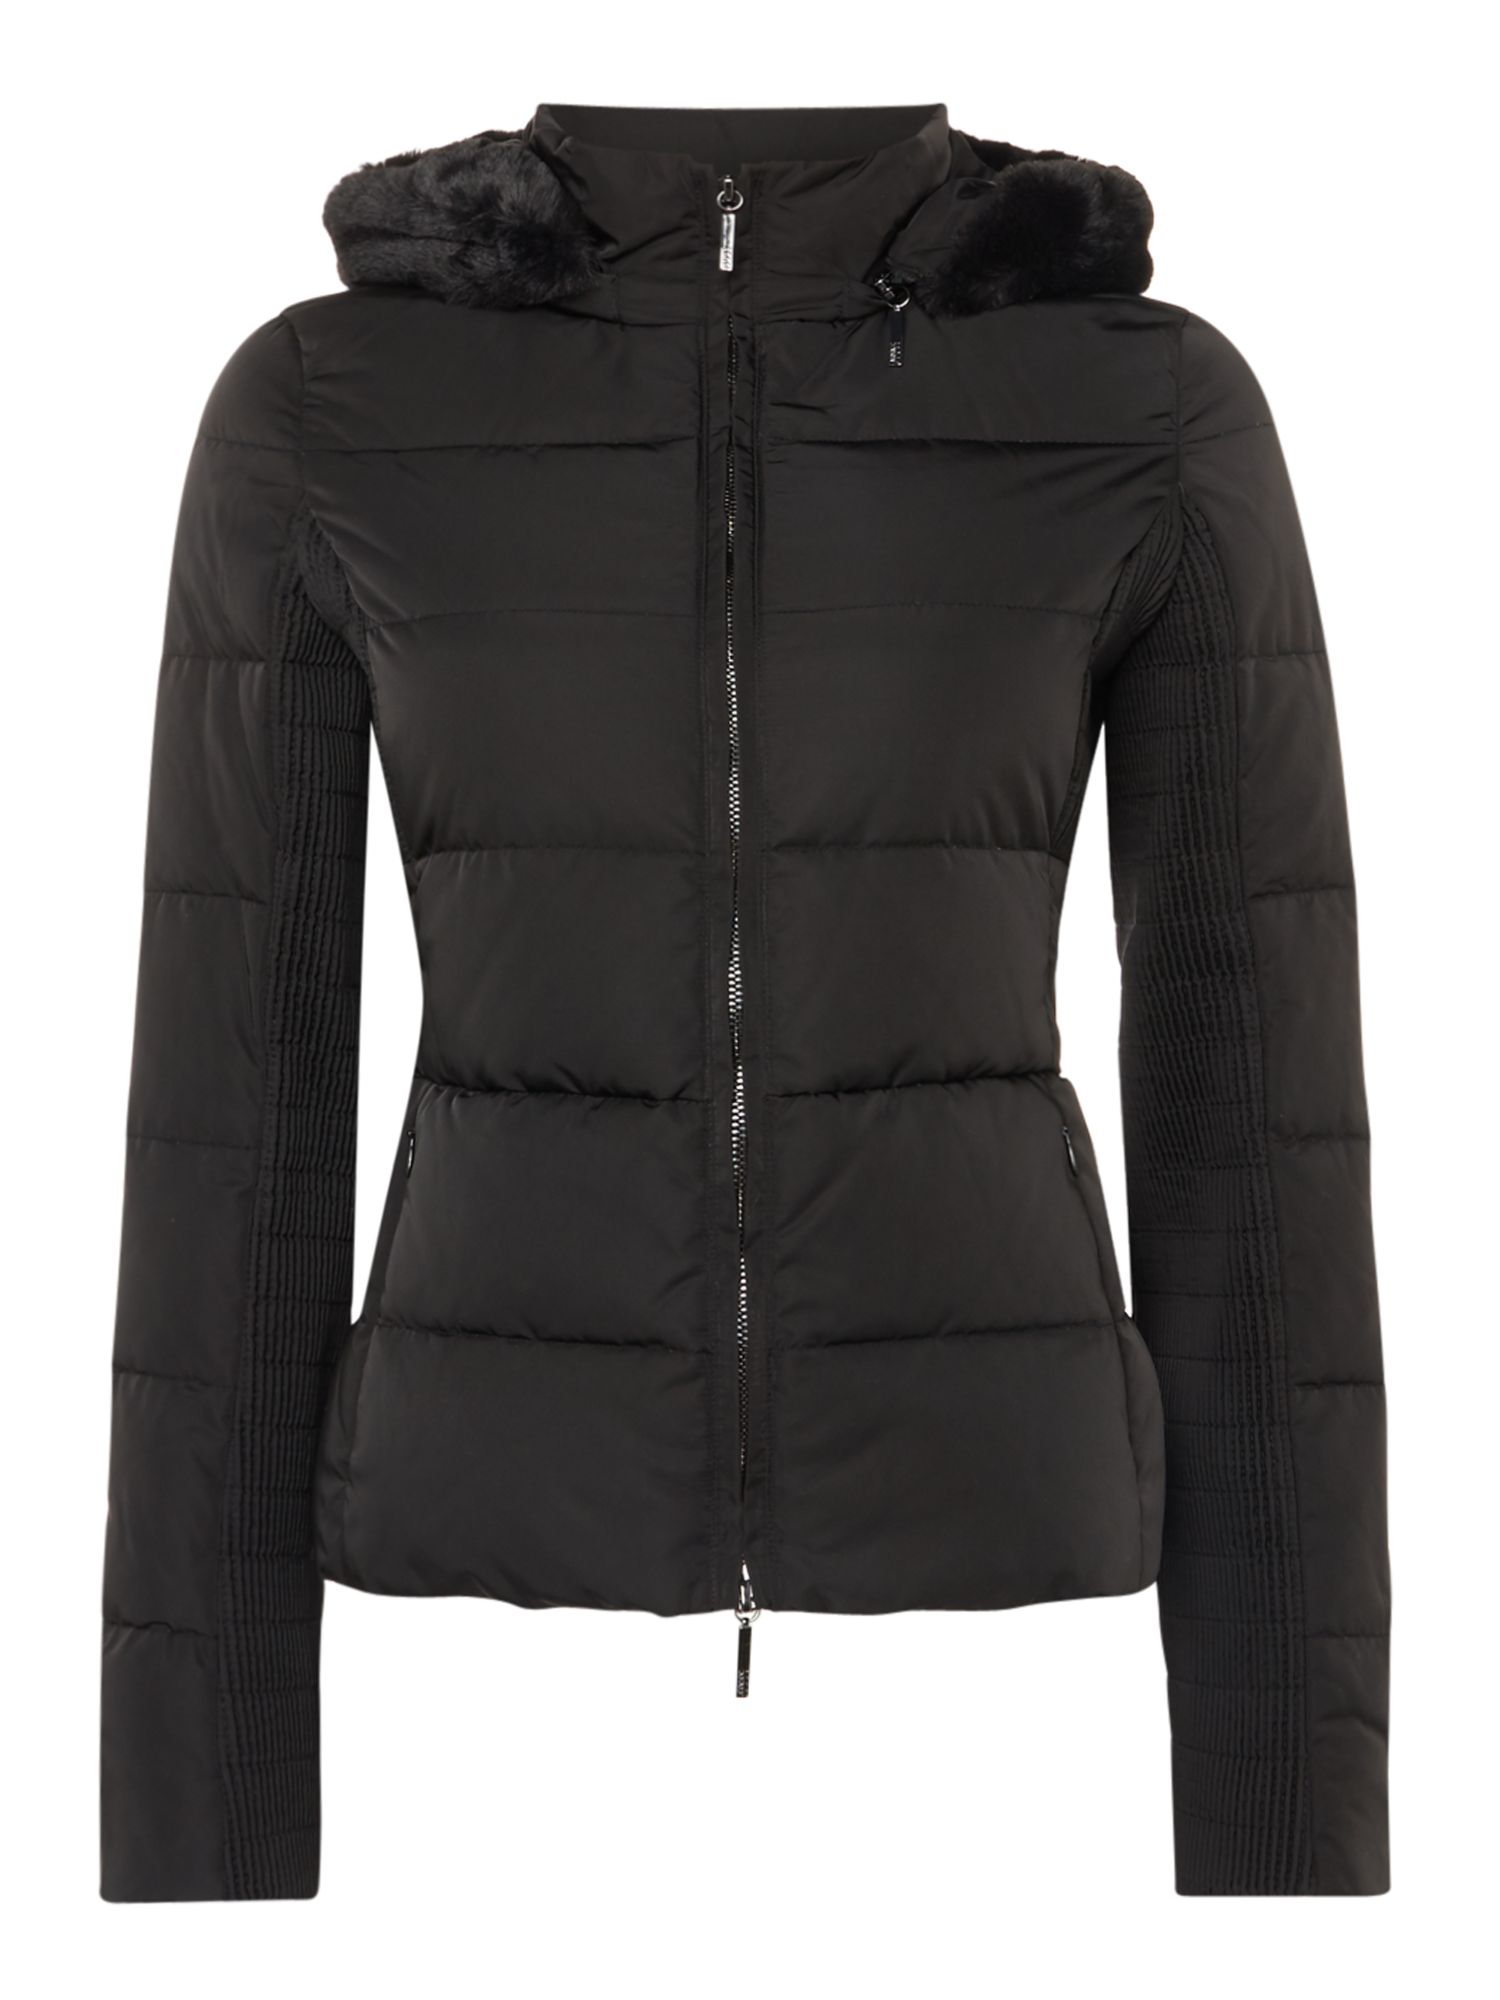 Armani Jeans Short padded hooded jacket in nero, Black